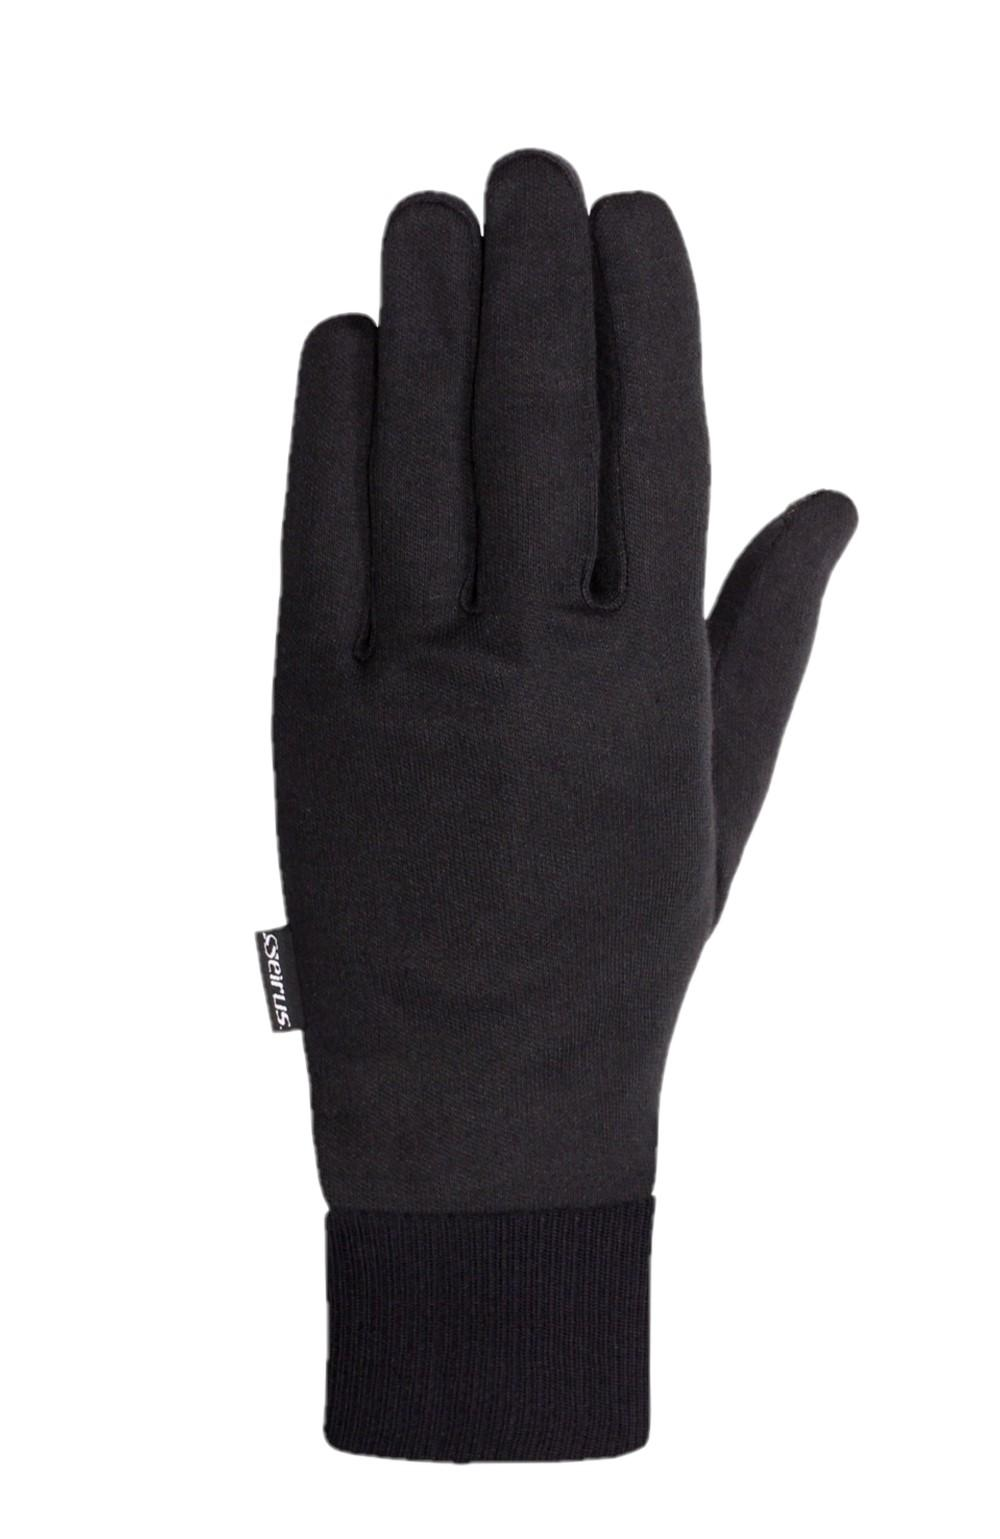 Seirus Deluxe Thermax glove in Blck